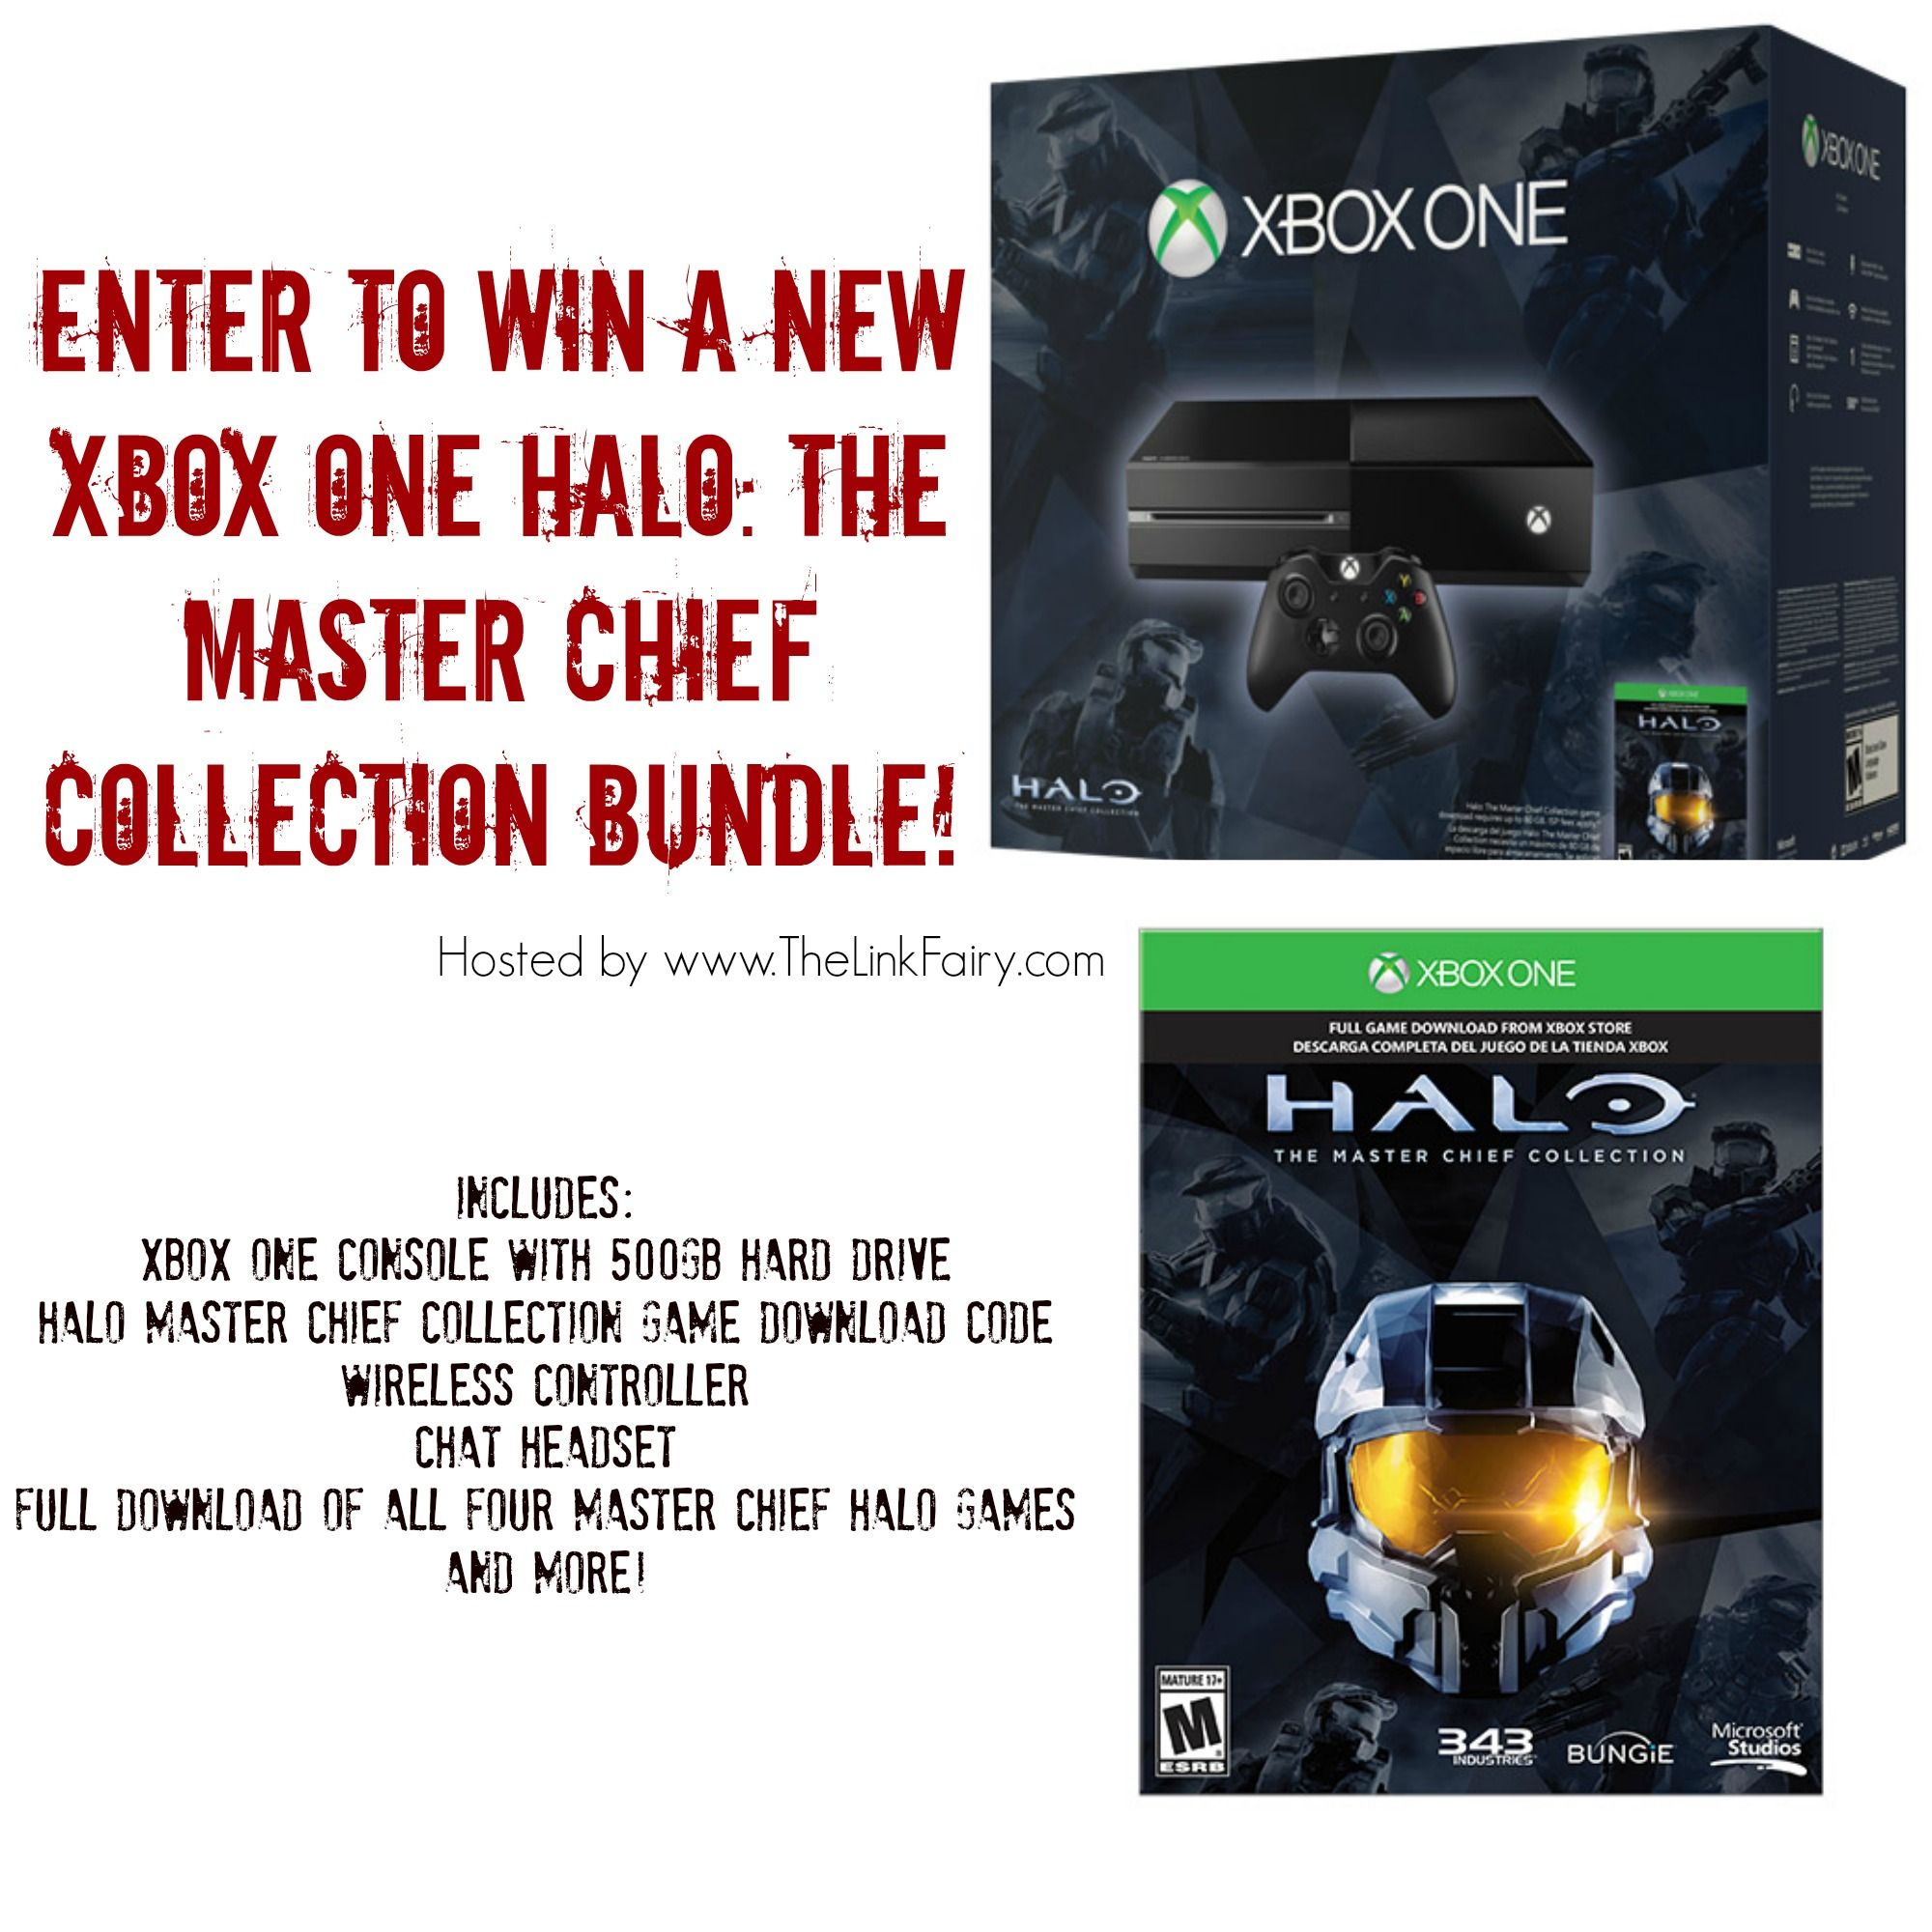 Enter to win a new XBOX ONE Halo The Master Chief Collection